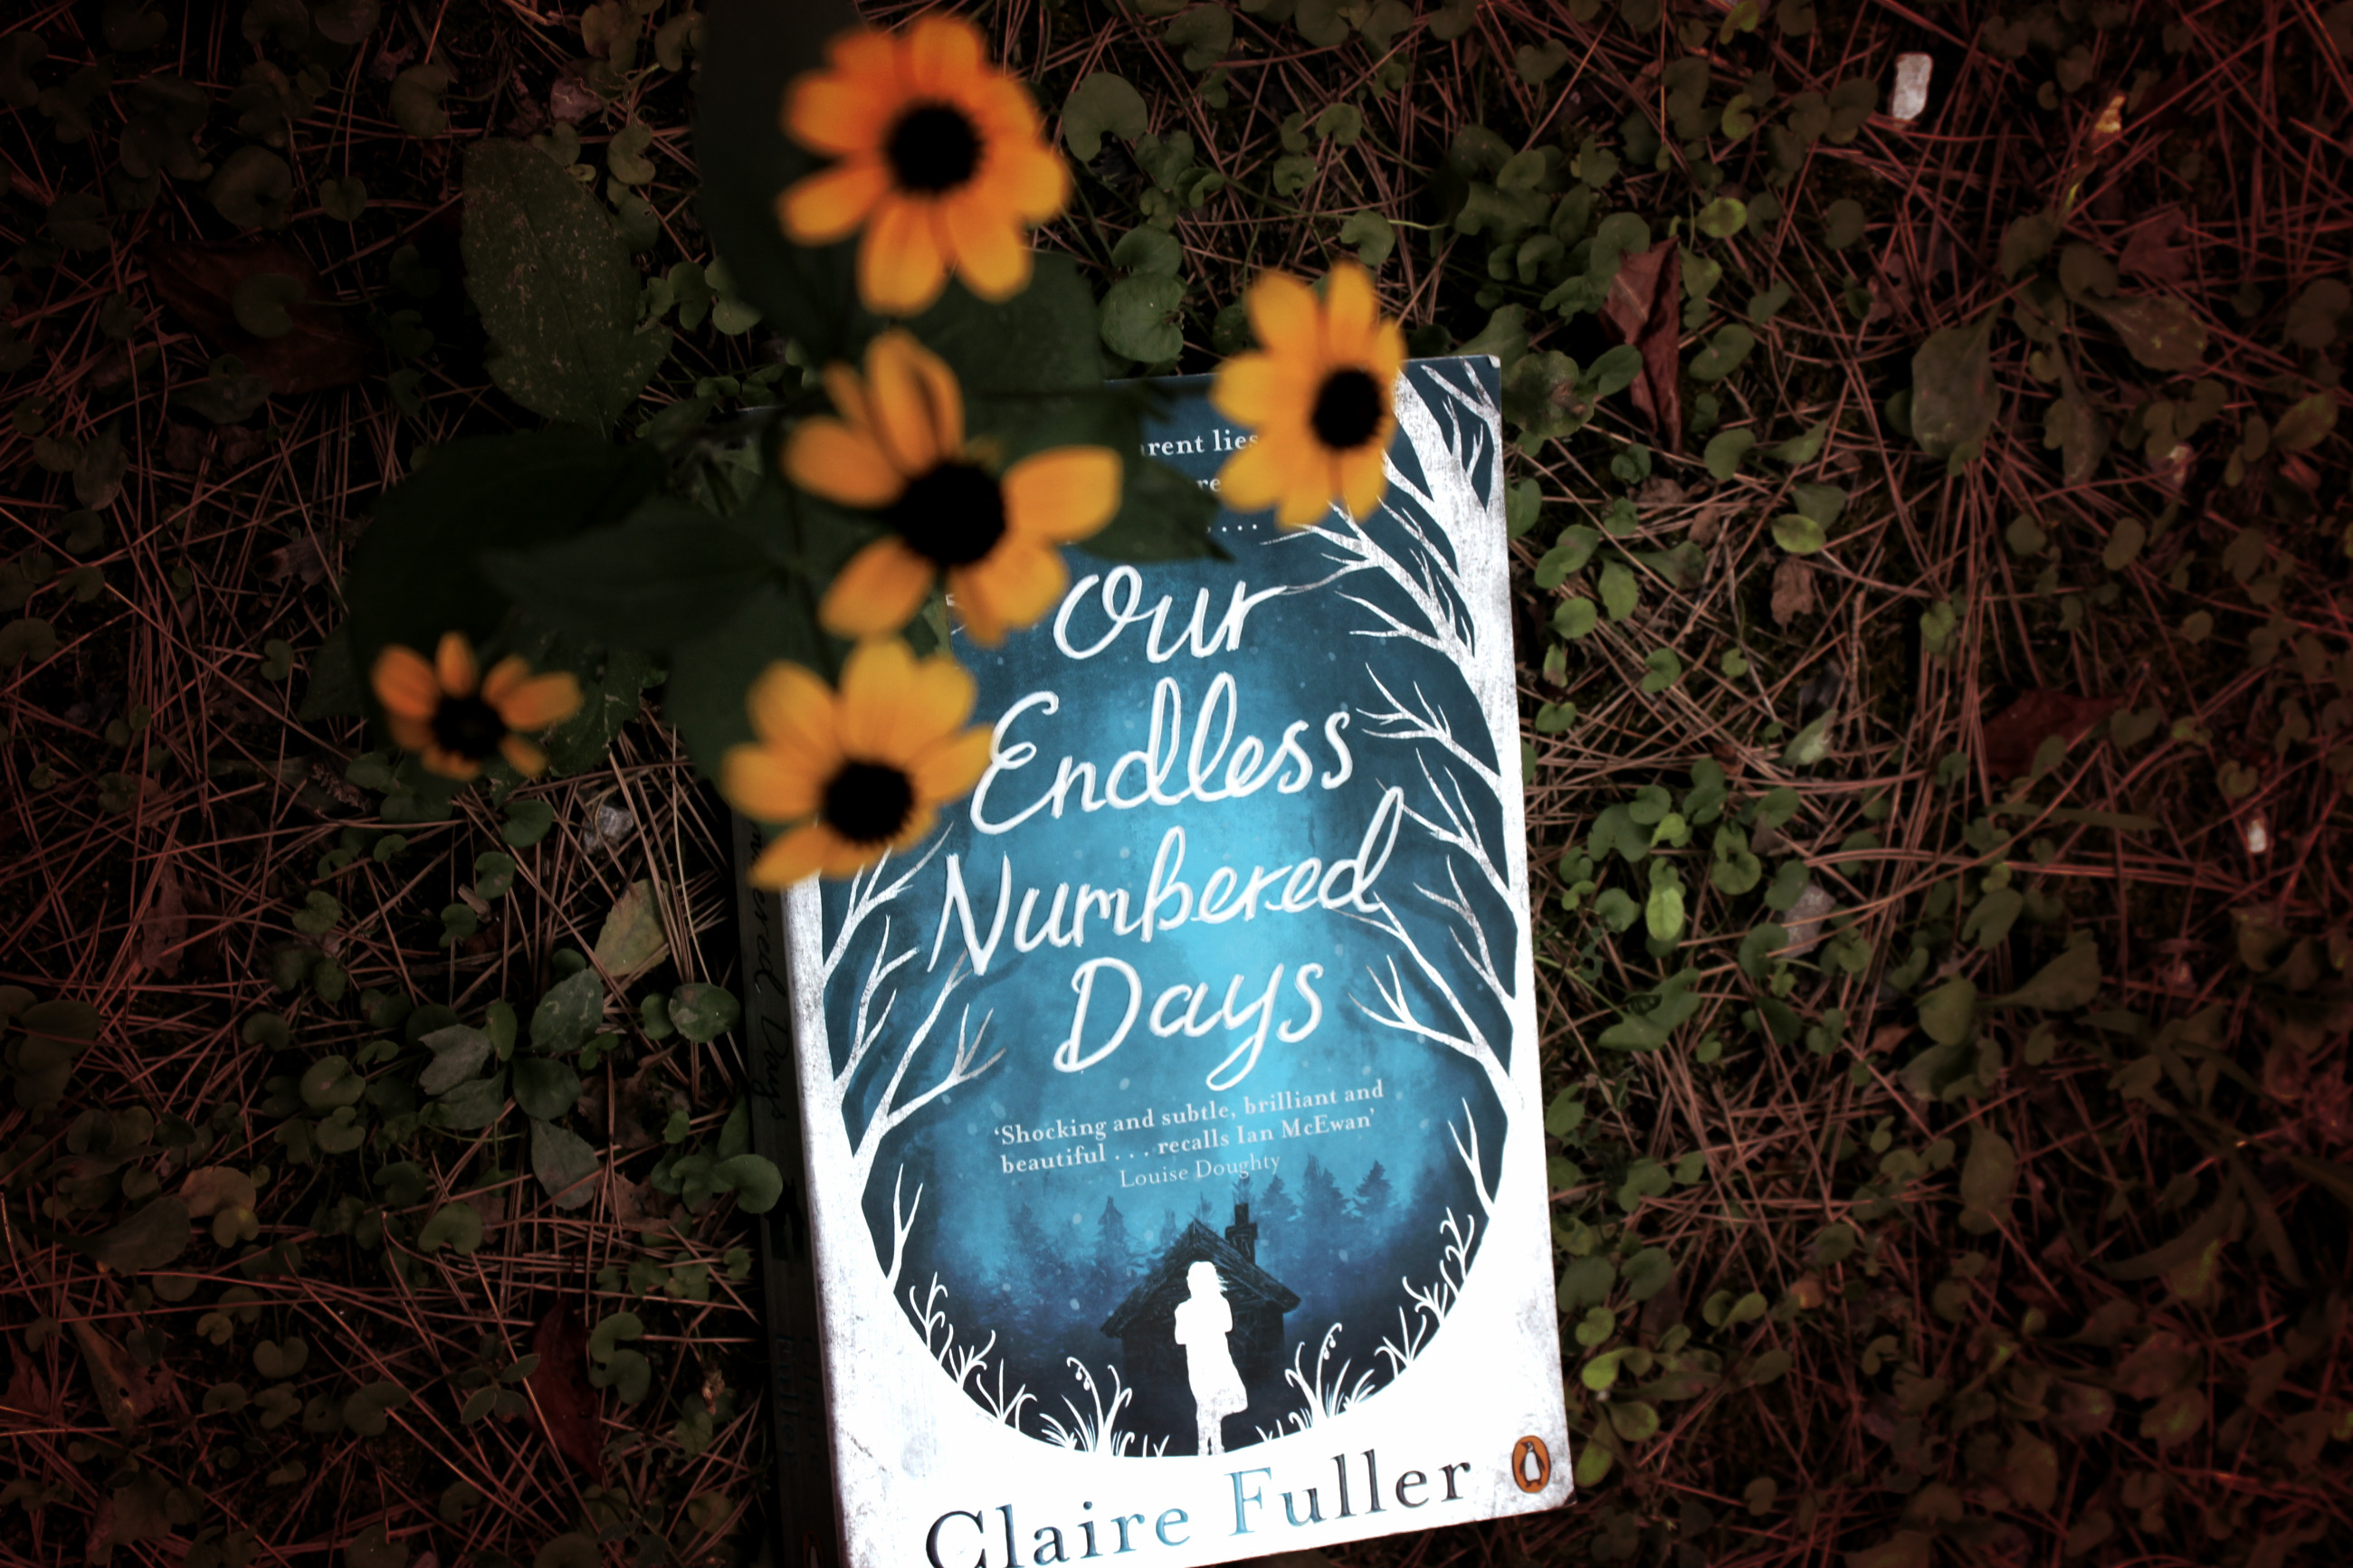 Our endless numbered days - bibliophile